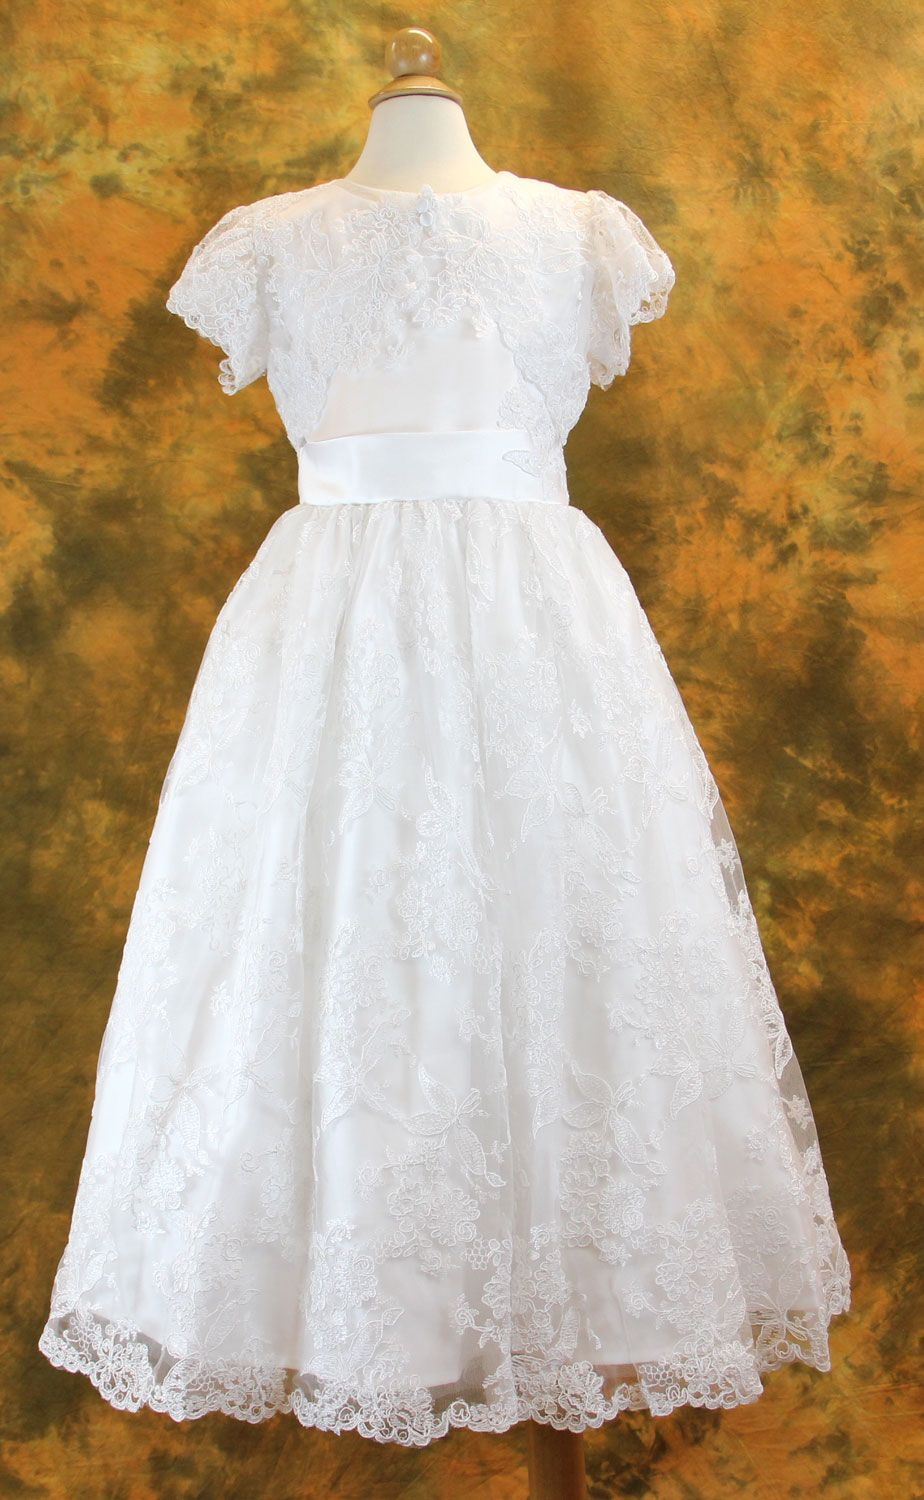 84e3ee94db Long Sleeve Lace Communion Dress - Juliette - Sophisticated Beaded Lace  with Fairytale Skirt with Long Sleeves - Girls Communion Dress…